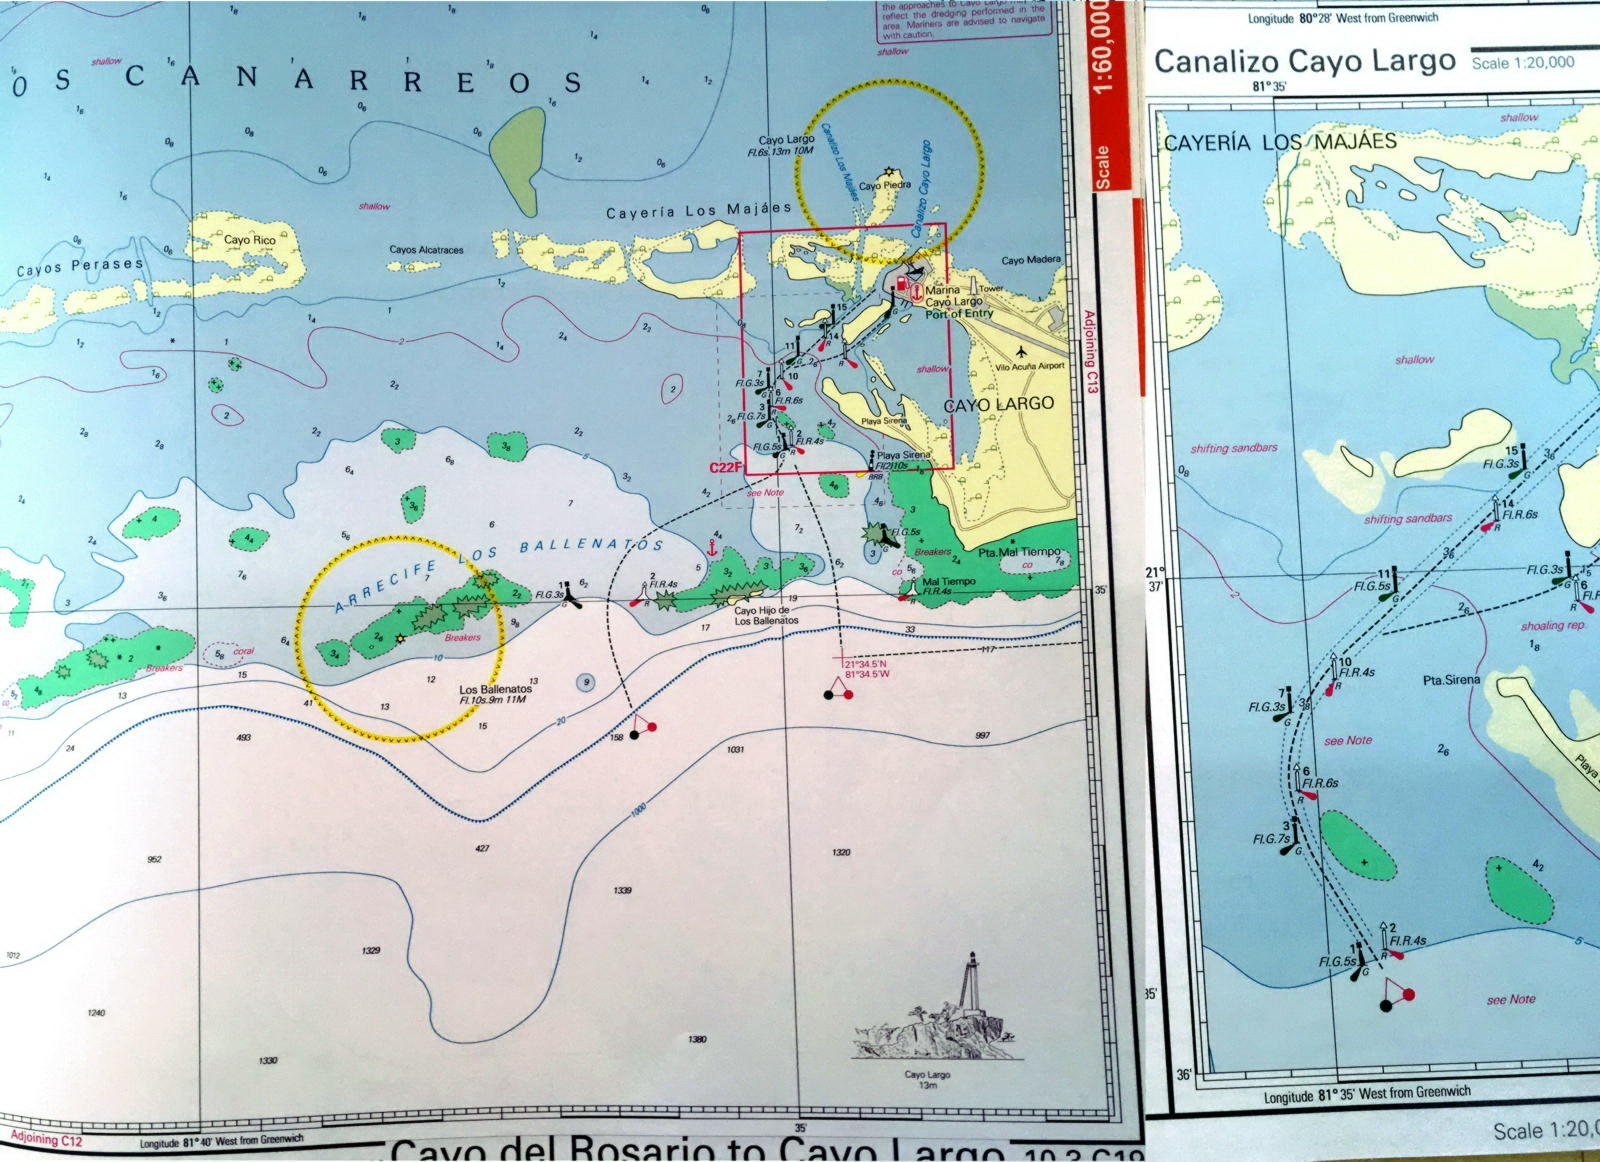 NV Charts can already create good paper charts based on vector data (in this case Cuba)